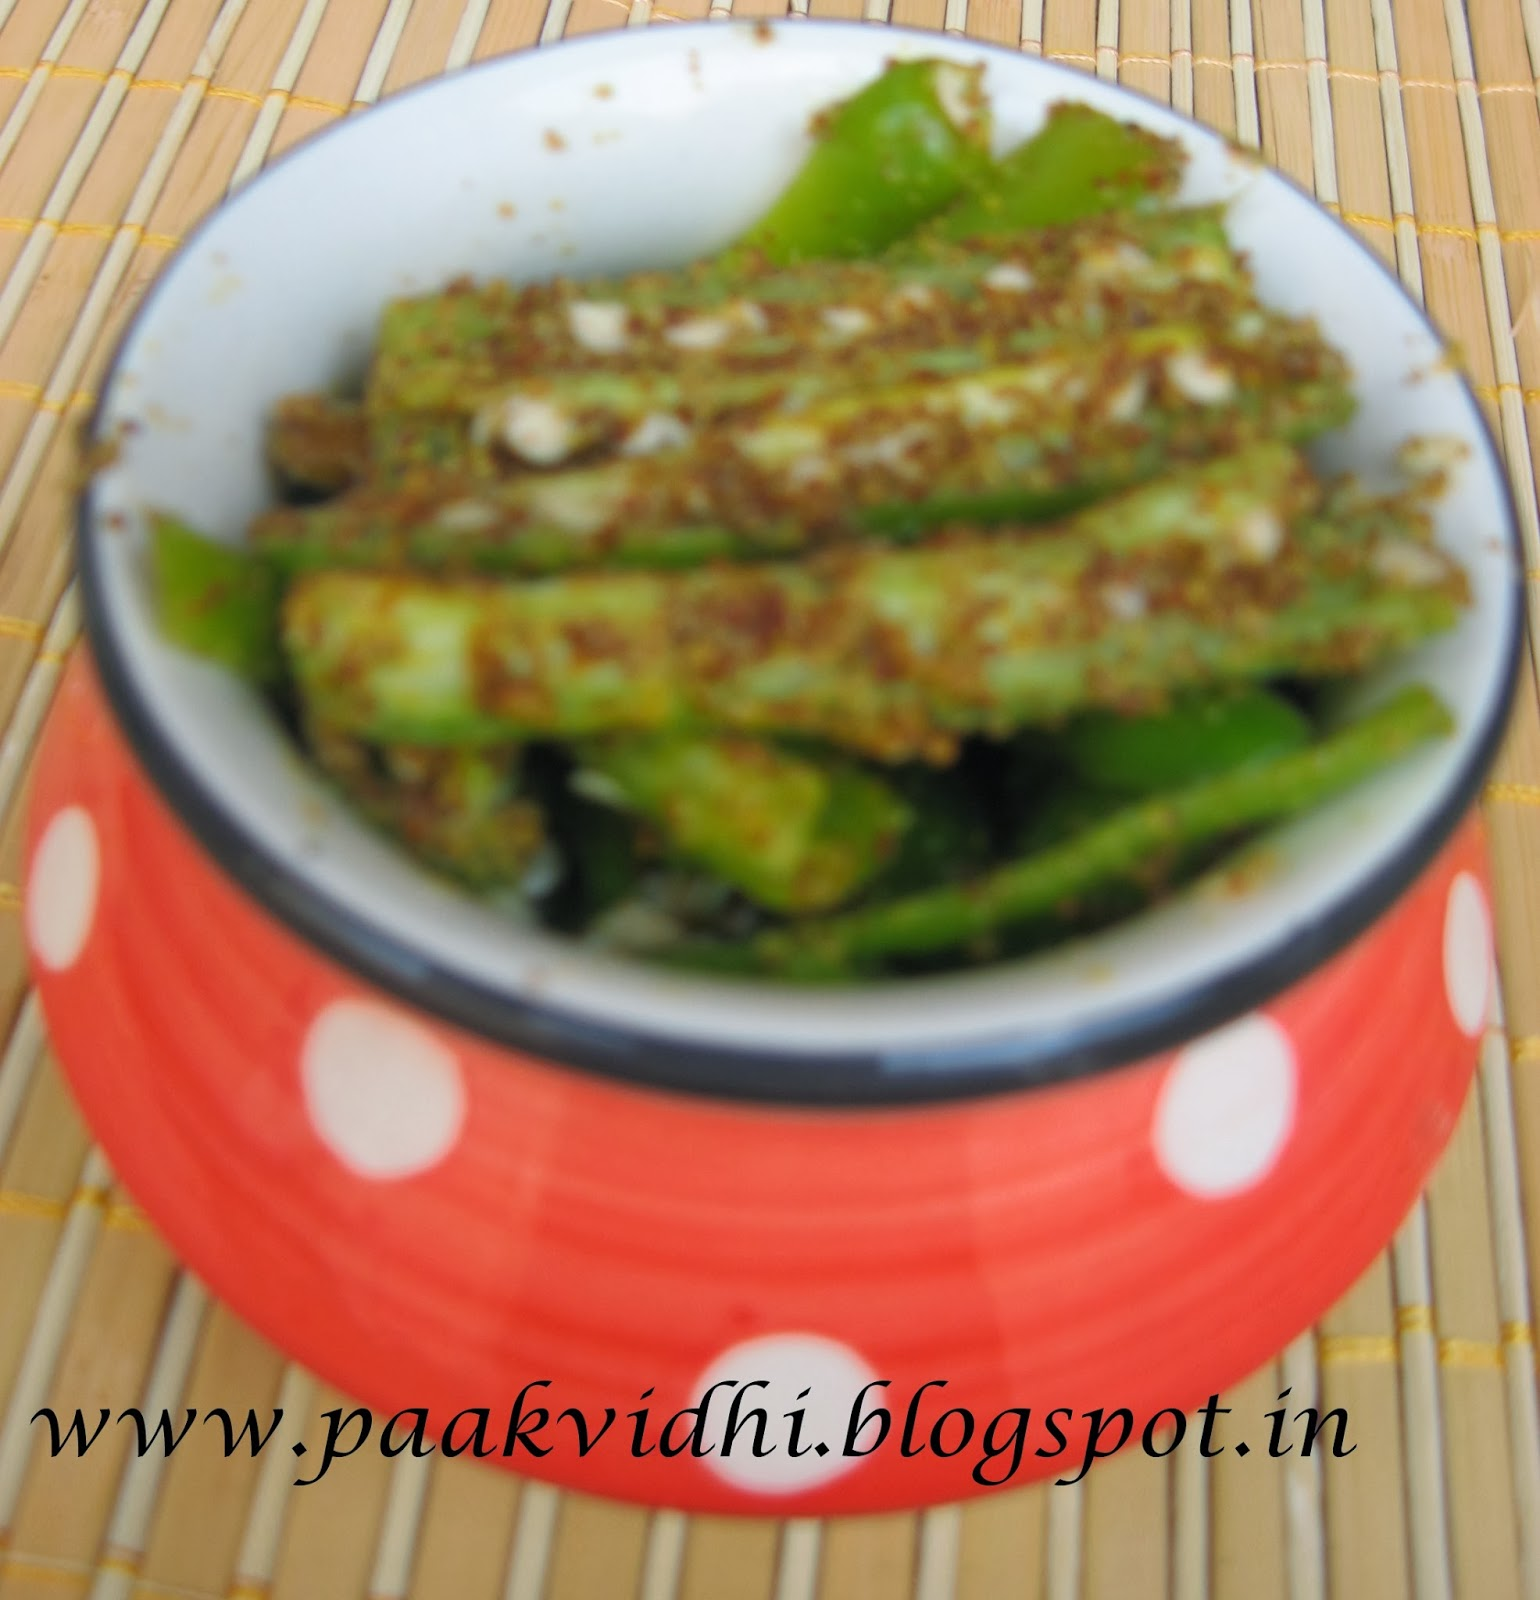 http://www.paakvidhi.com/2014/02/ingredients-100-gms-green-chilies-2.html